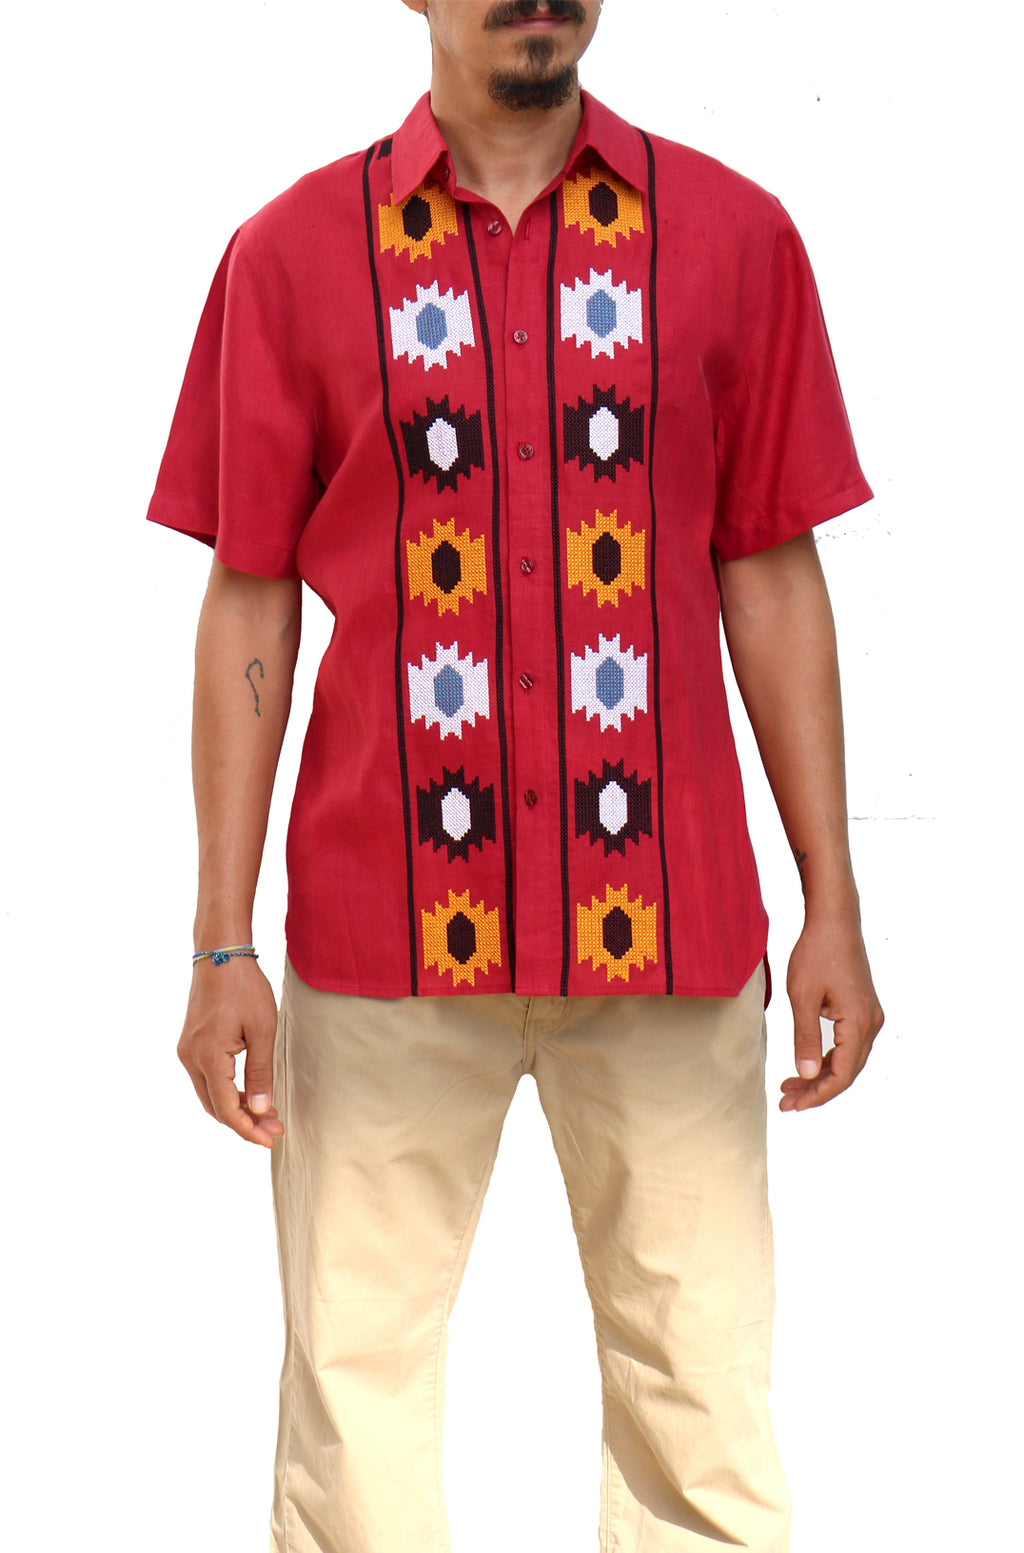 Fanm Mon SUN Burgundy Linen Men Shirt Flowers